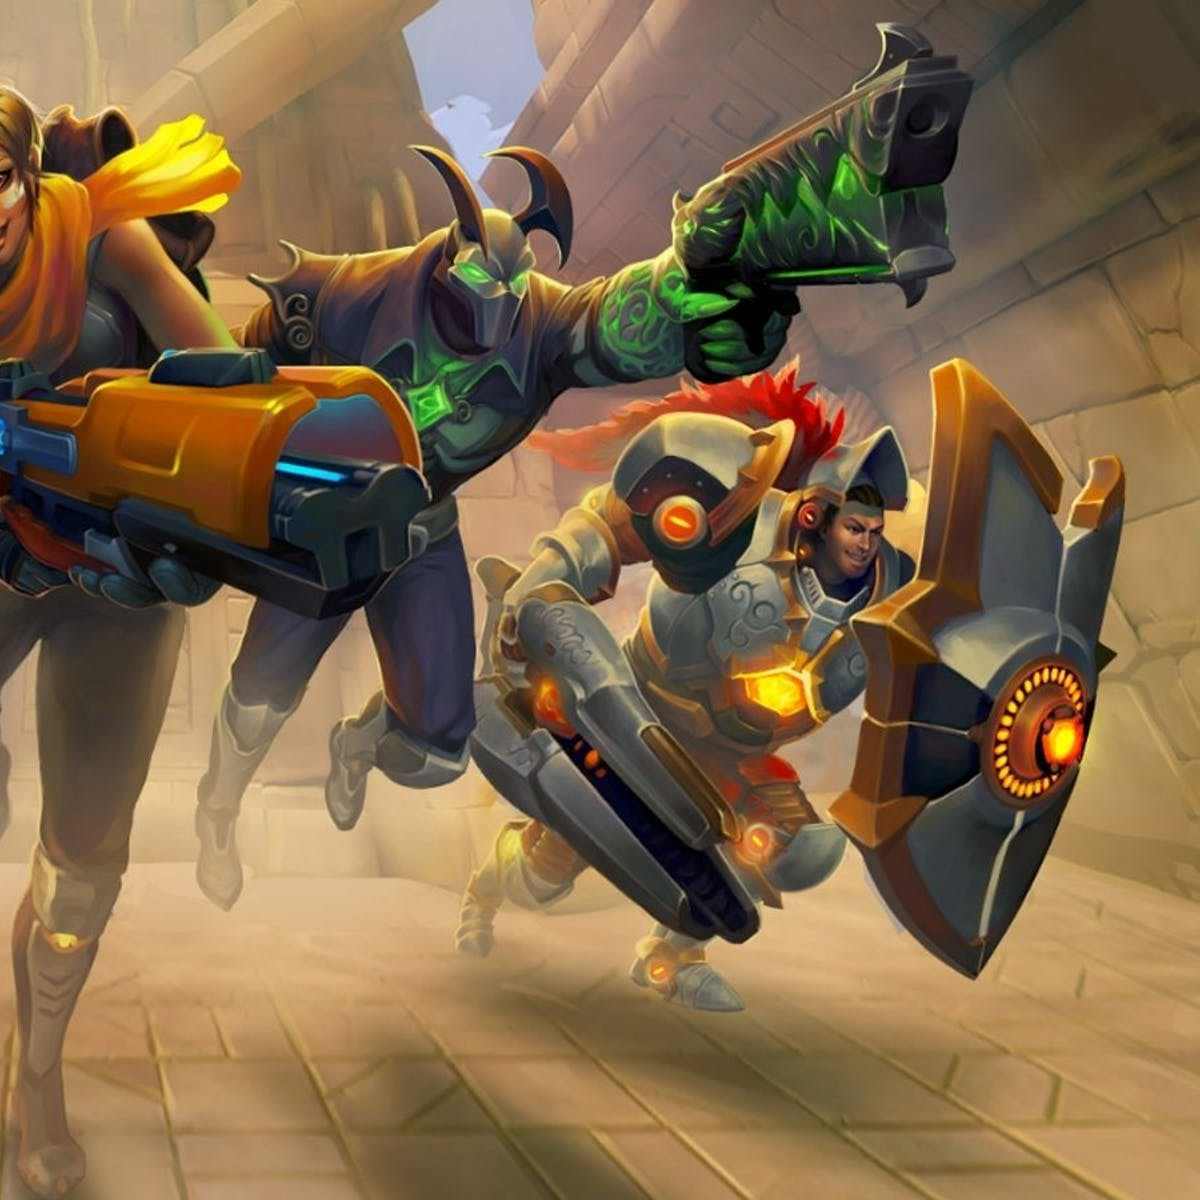 Paladins' Nintendo Switch Review: The Ideal Mobile 'Overwatch